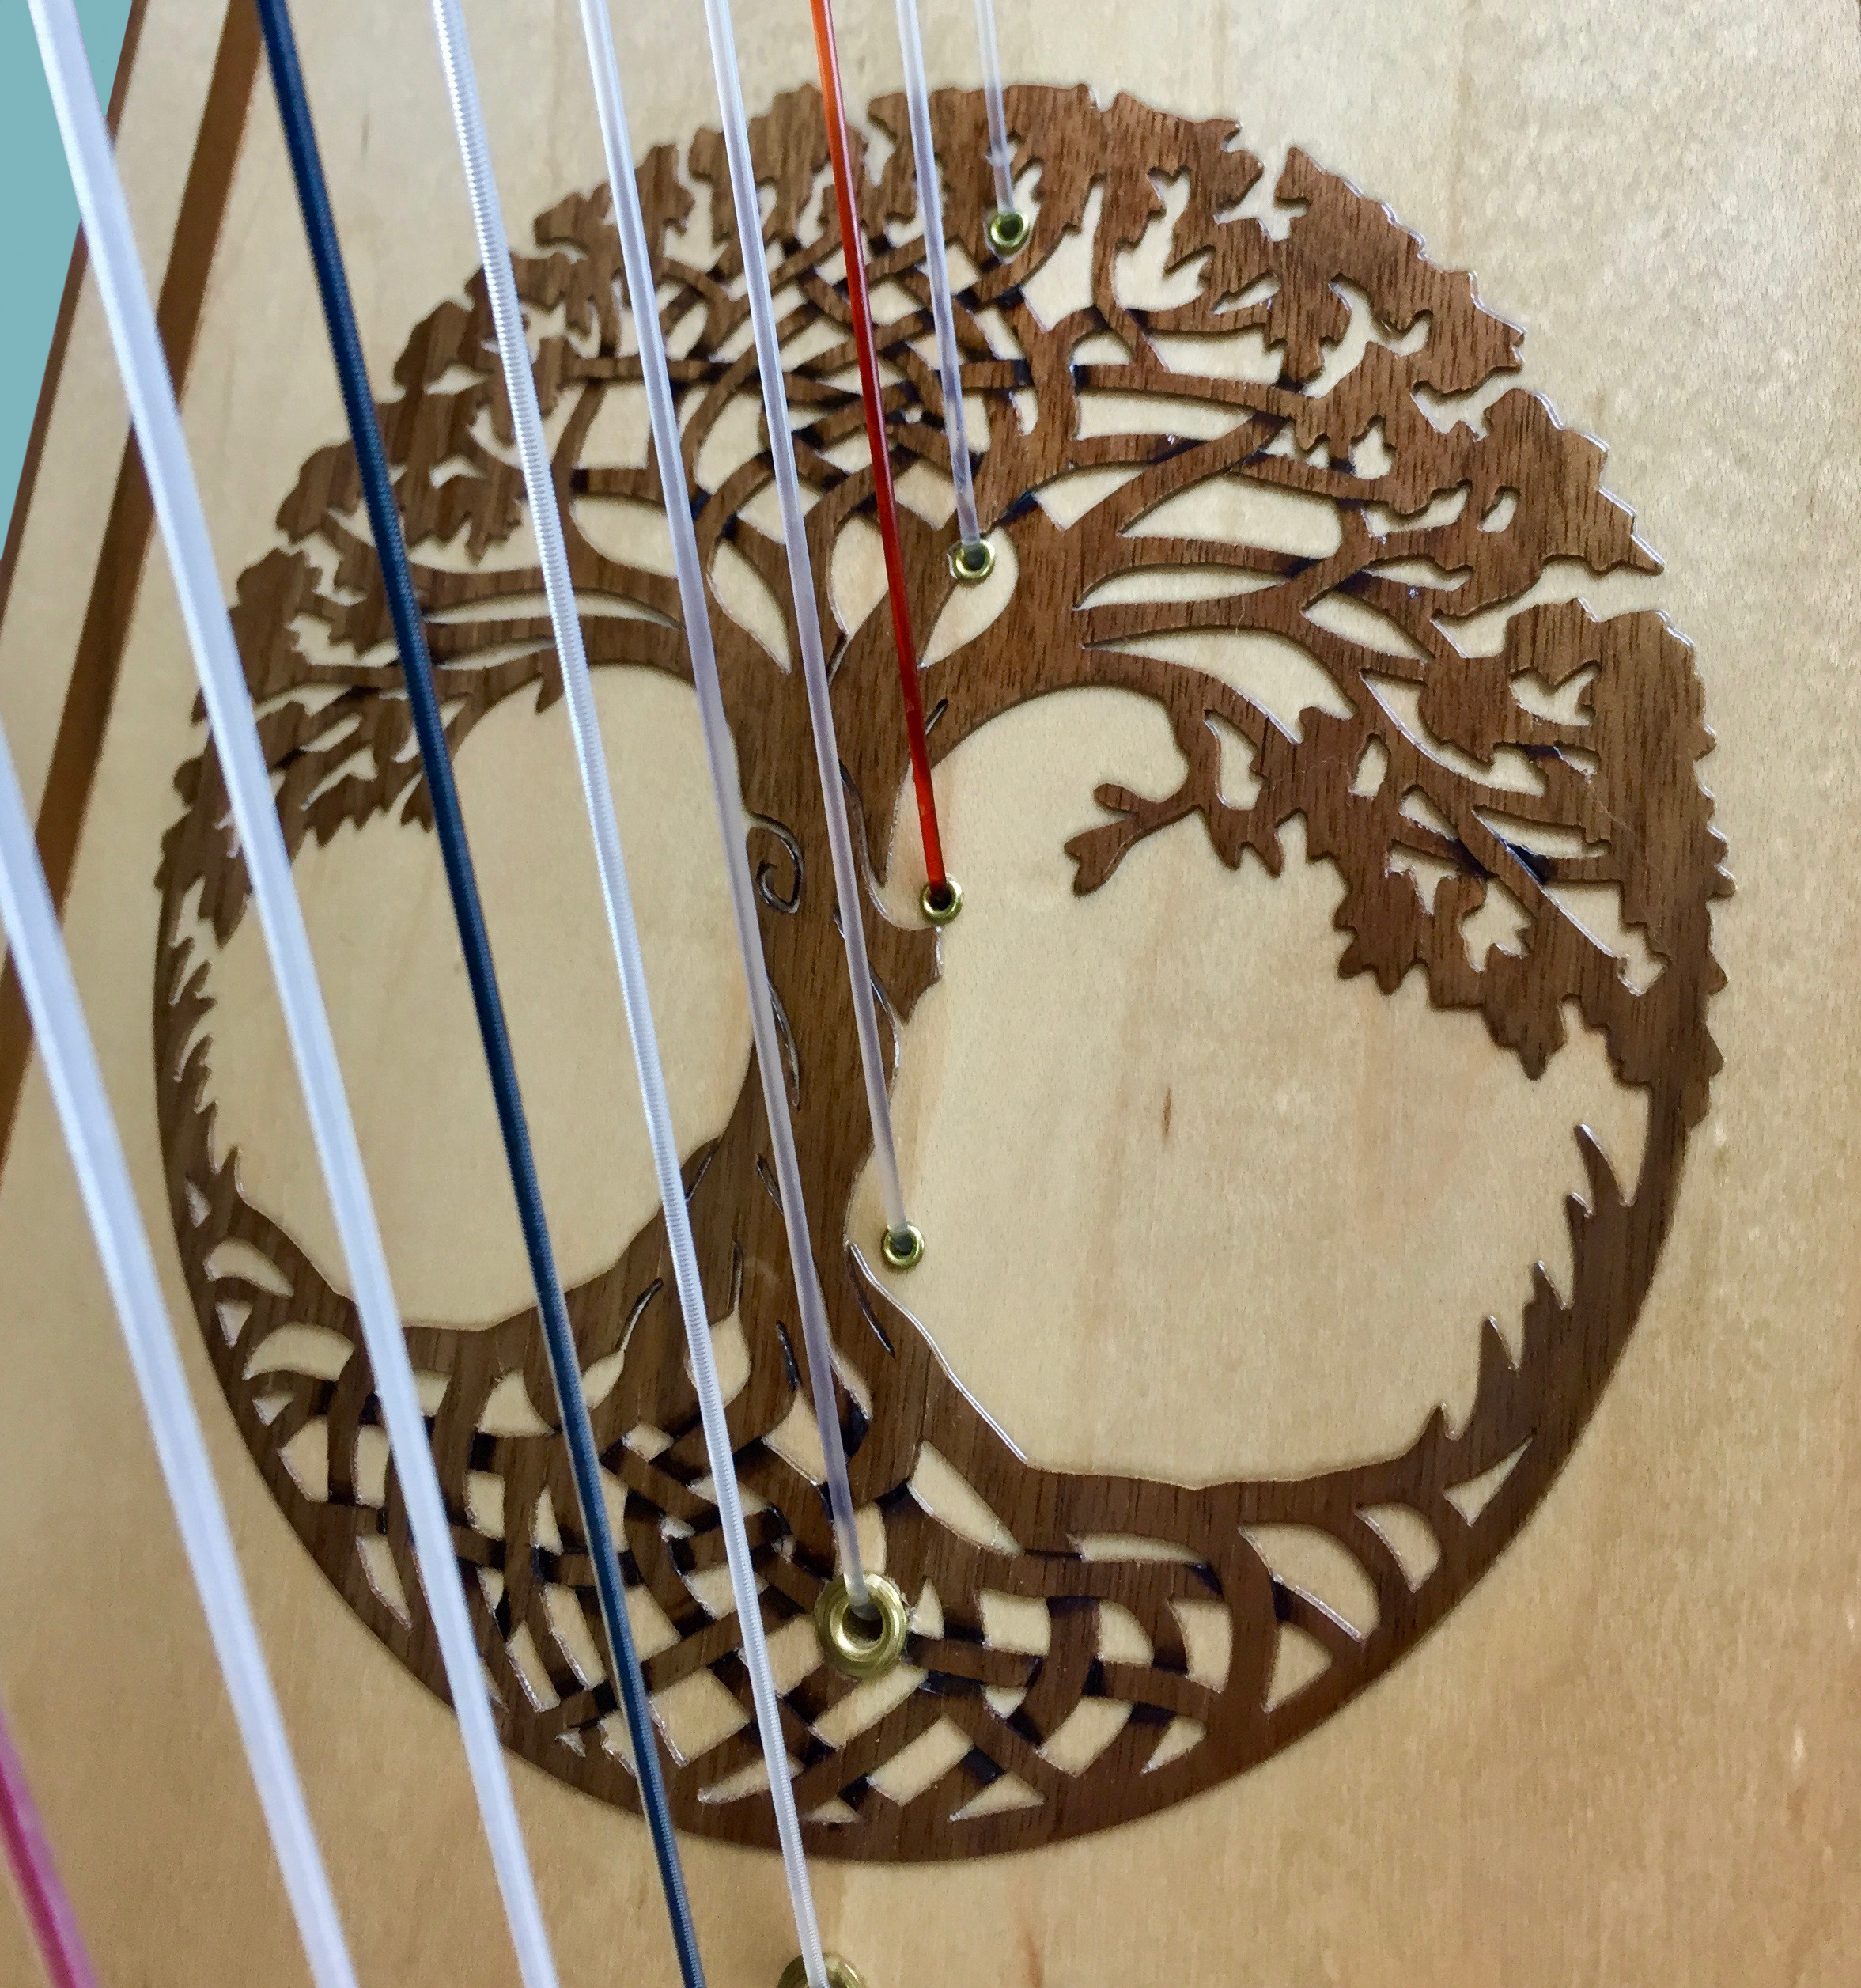 You can see the graduated string spacing here as the strings transition from nylon/nylon wrapped strings, which have more mass and need more room to vibrate, to the monofilament tempered nylon strings.